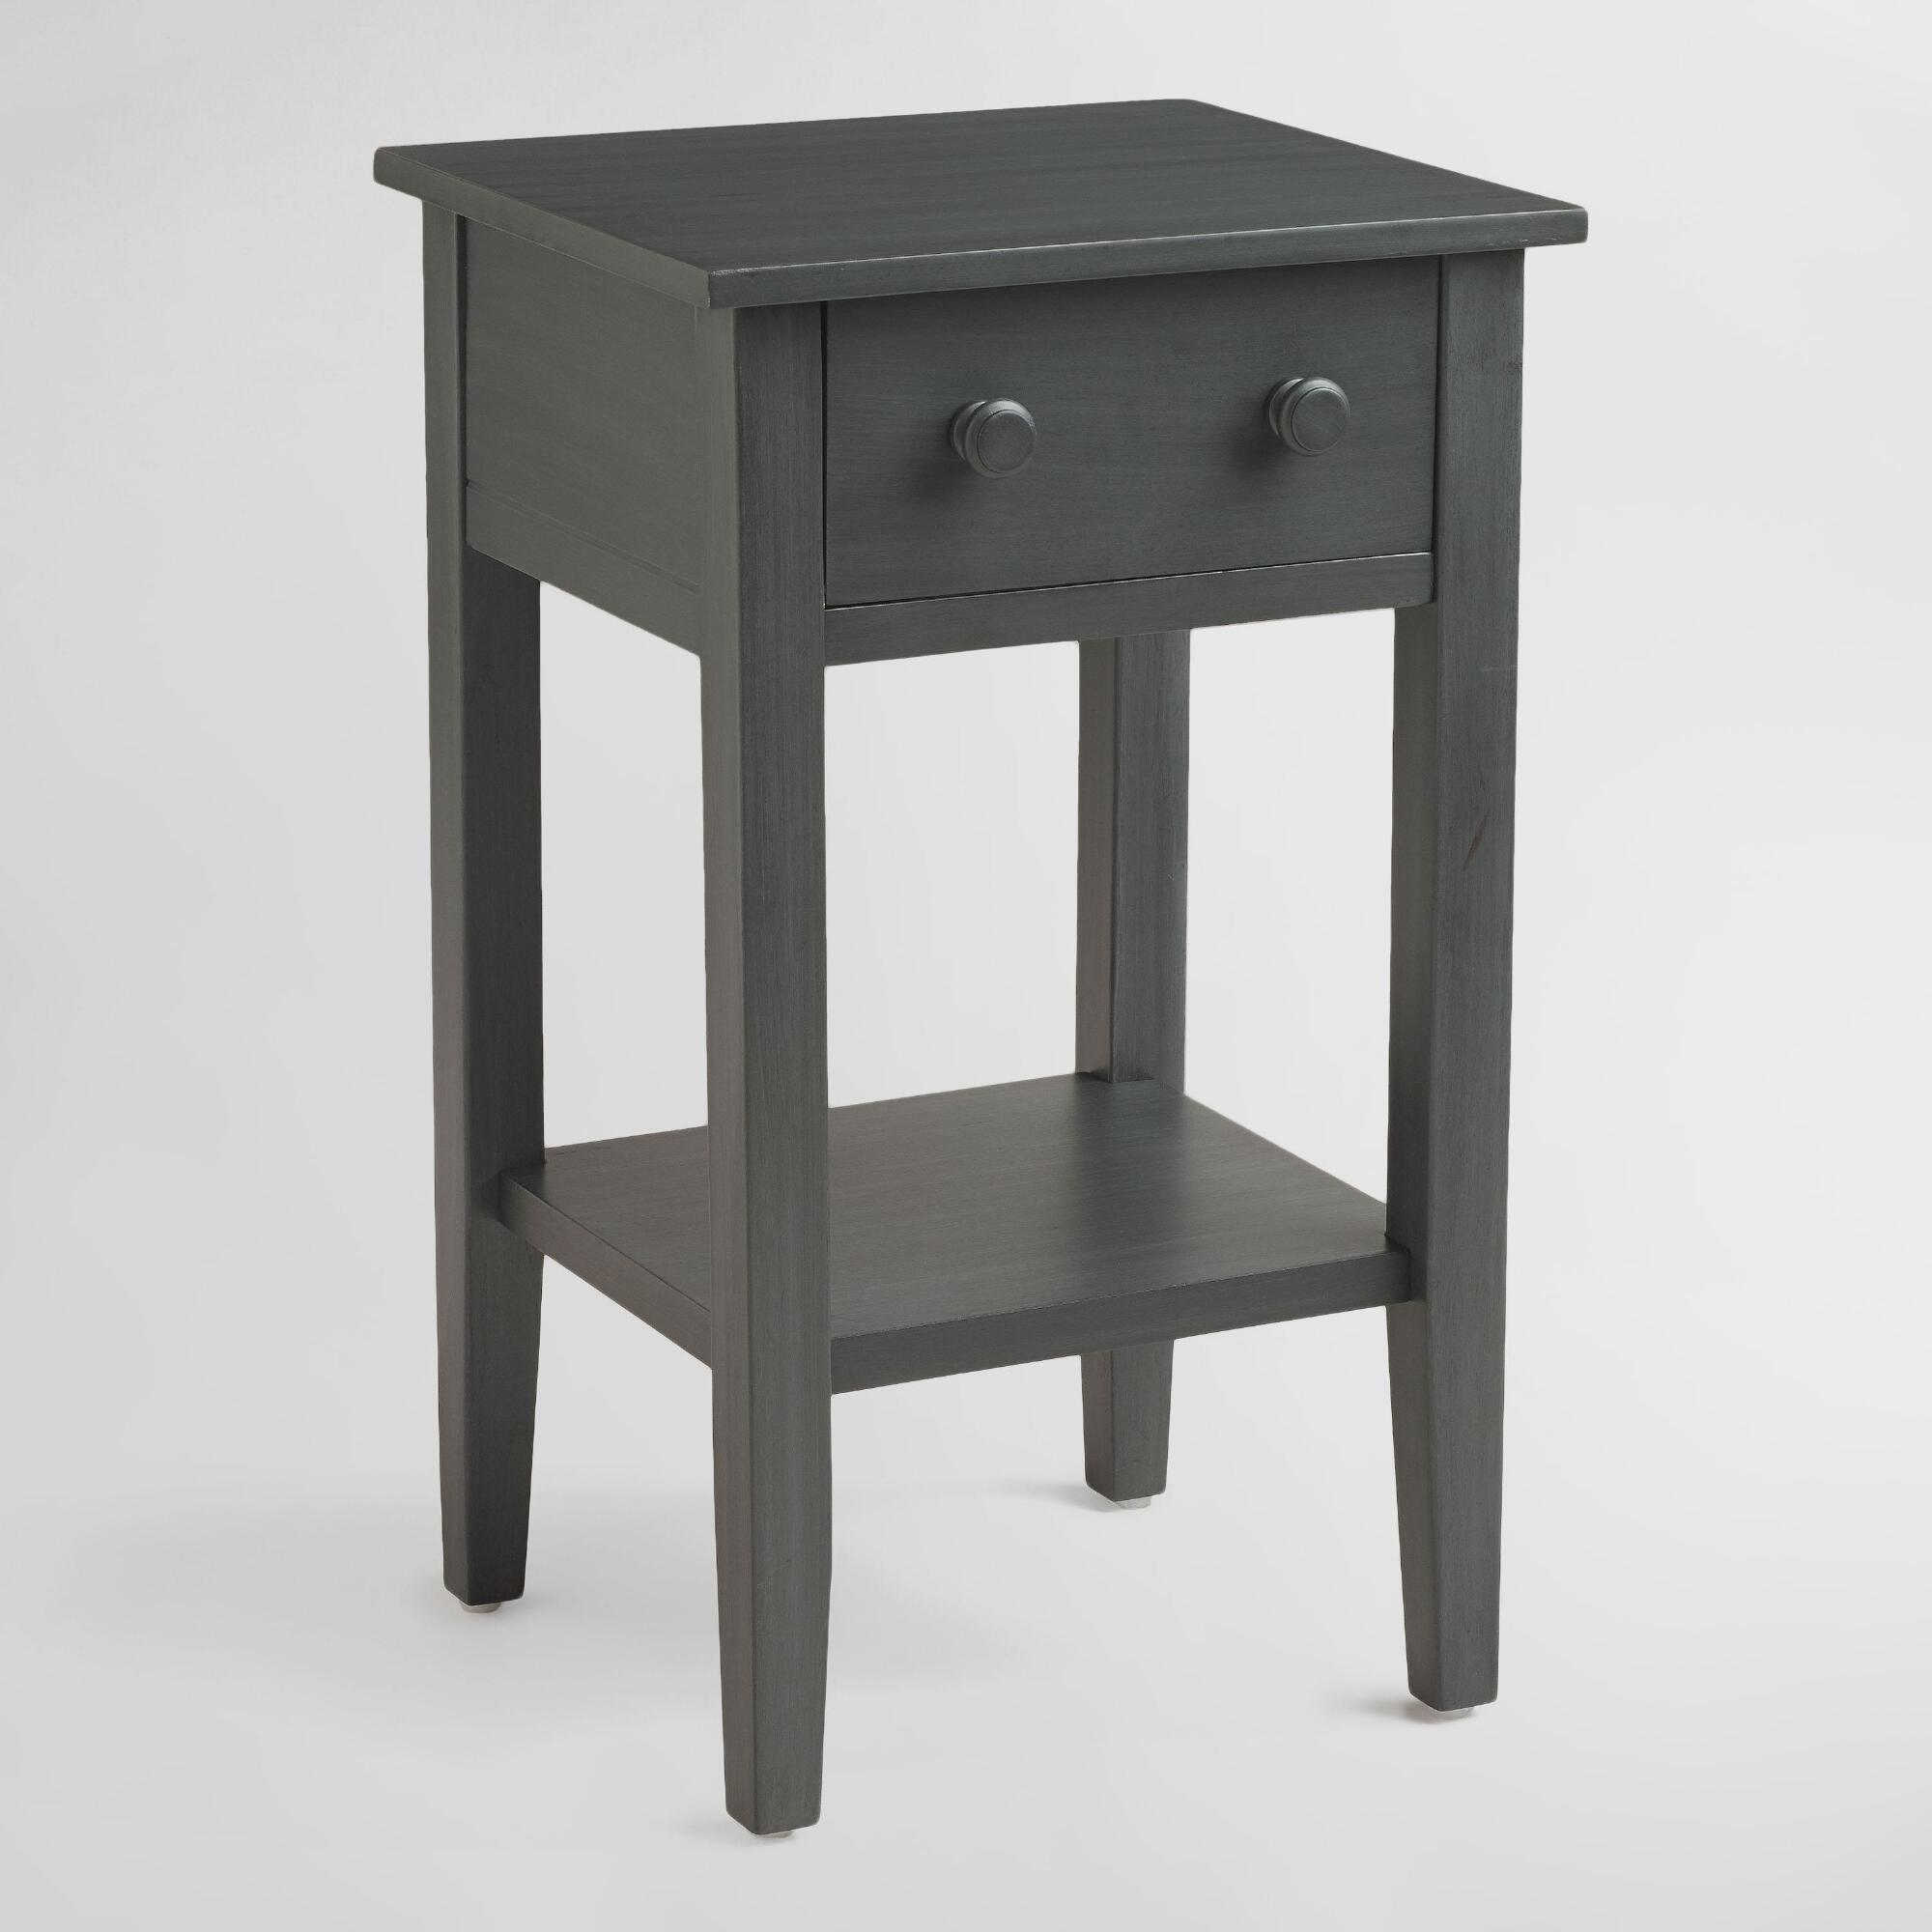 nightstands bedside tables vanity sets world market iipsrv fcgi virgil accent table tobacco blue sara nightstand dark cherry wood acrylic patio cover antique end with drawers